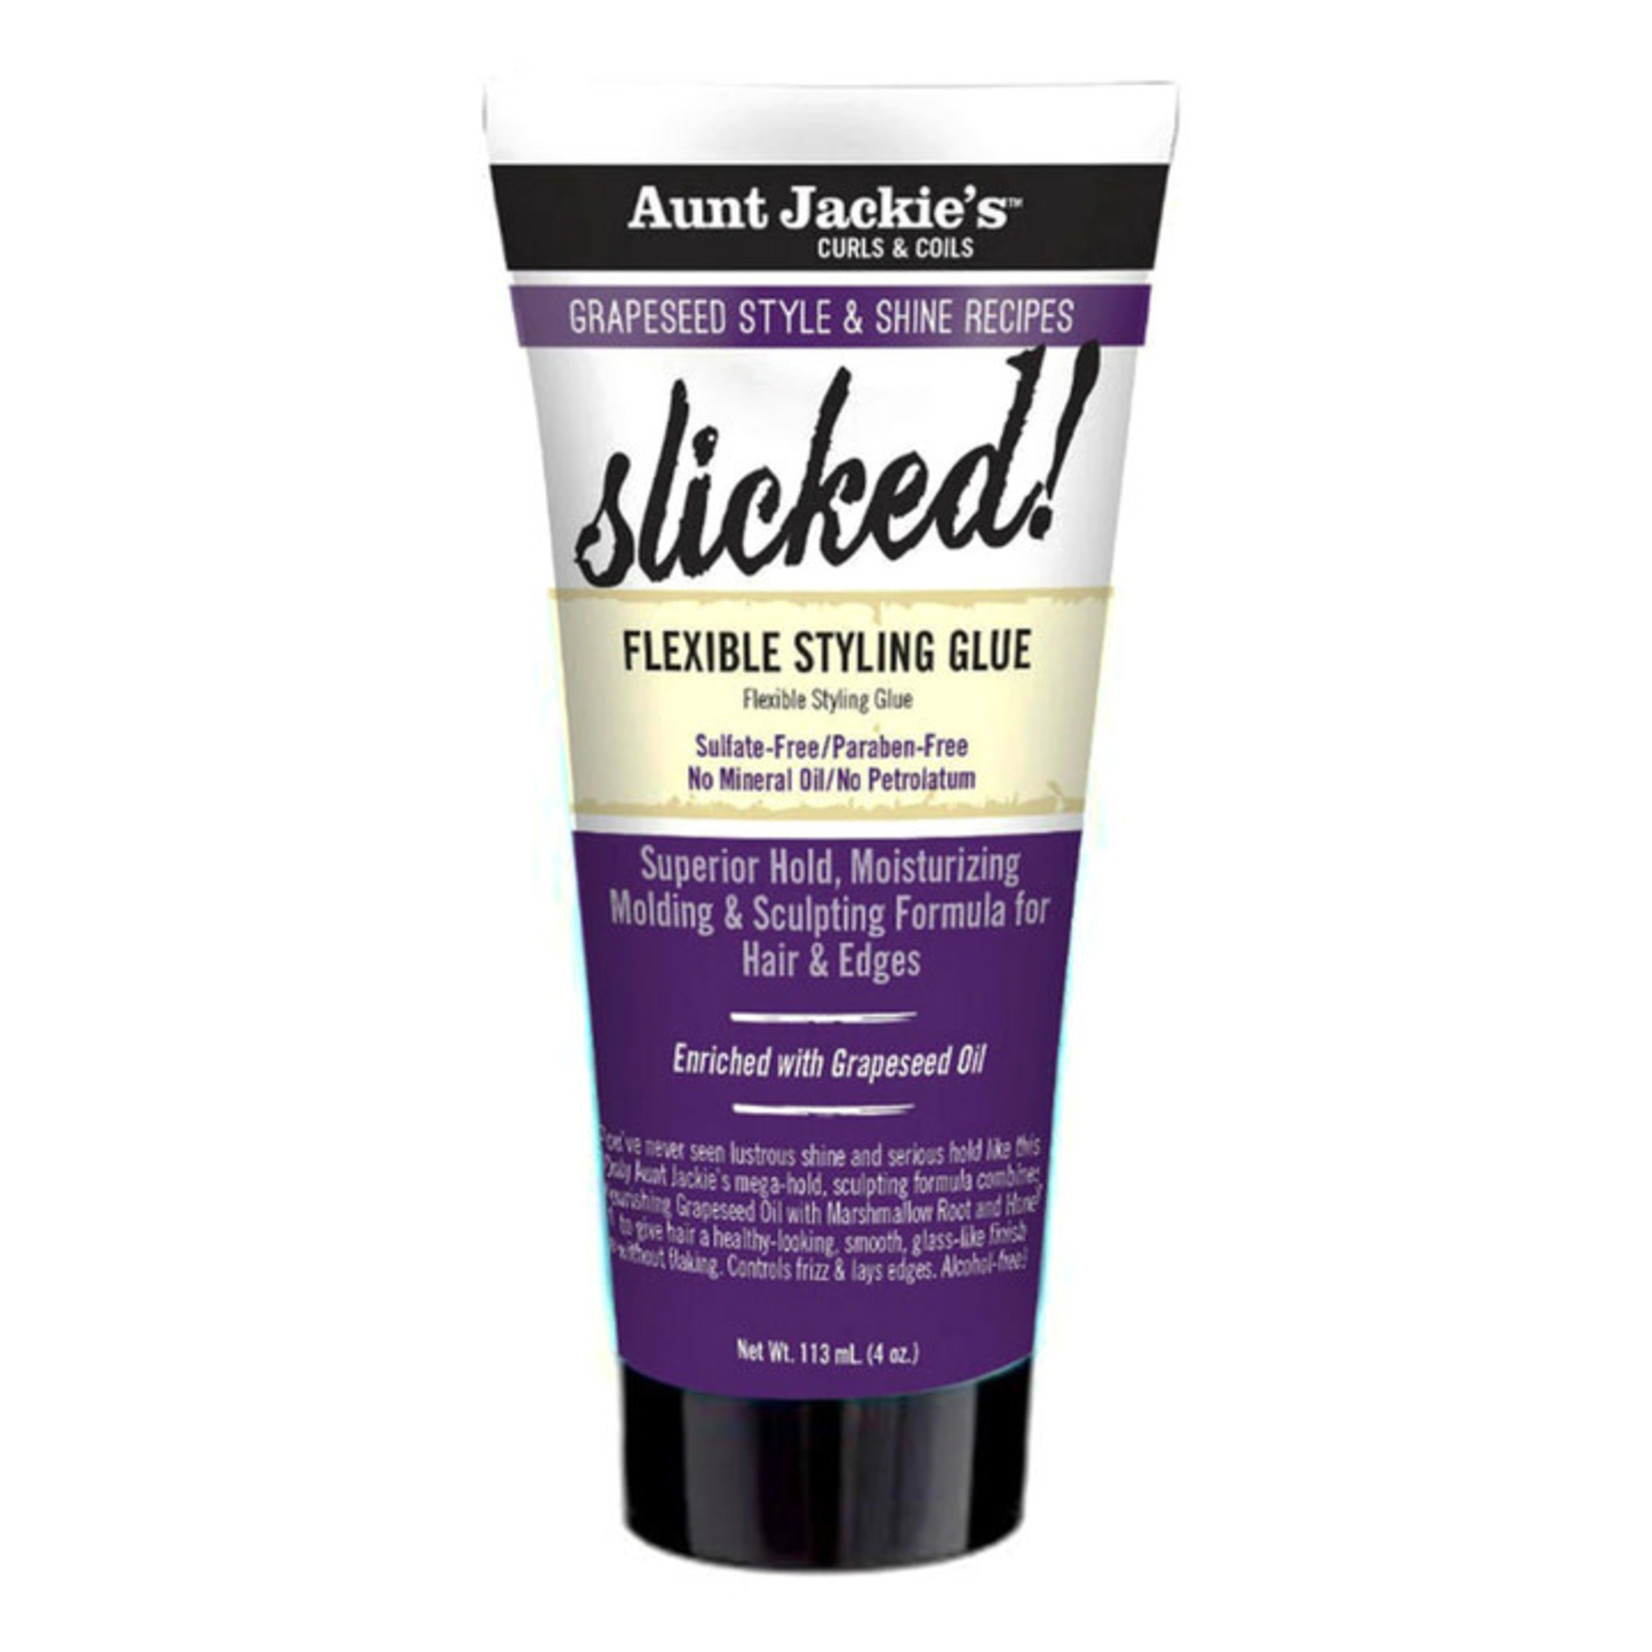 AUNT JACKIE'S AUNT JACKIE'S GRAPESEED SLICKED! FLEXIBLE STYLING GLUE [4OZ]